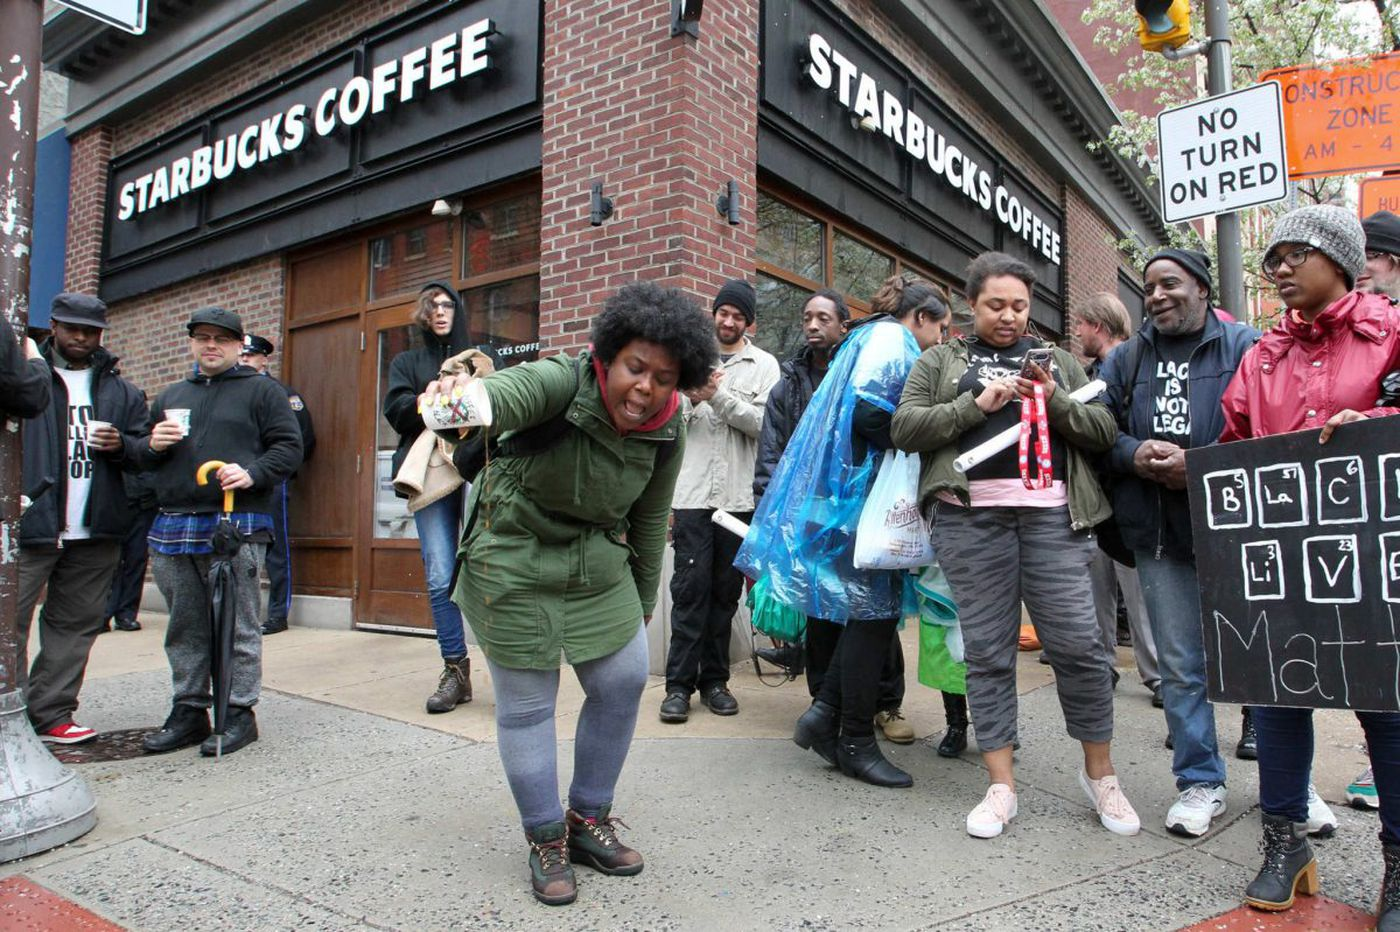 Starbucks CEO in Philadelphia as protests resume at Center City Starbucks where two black men were arrested